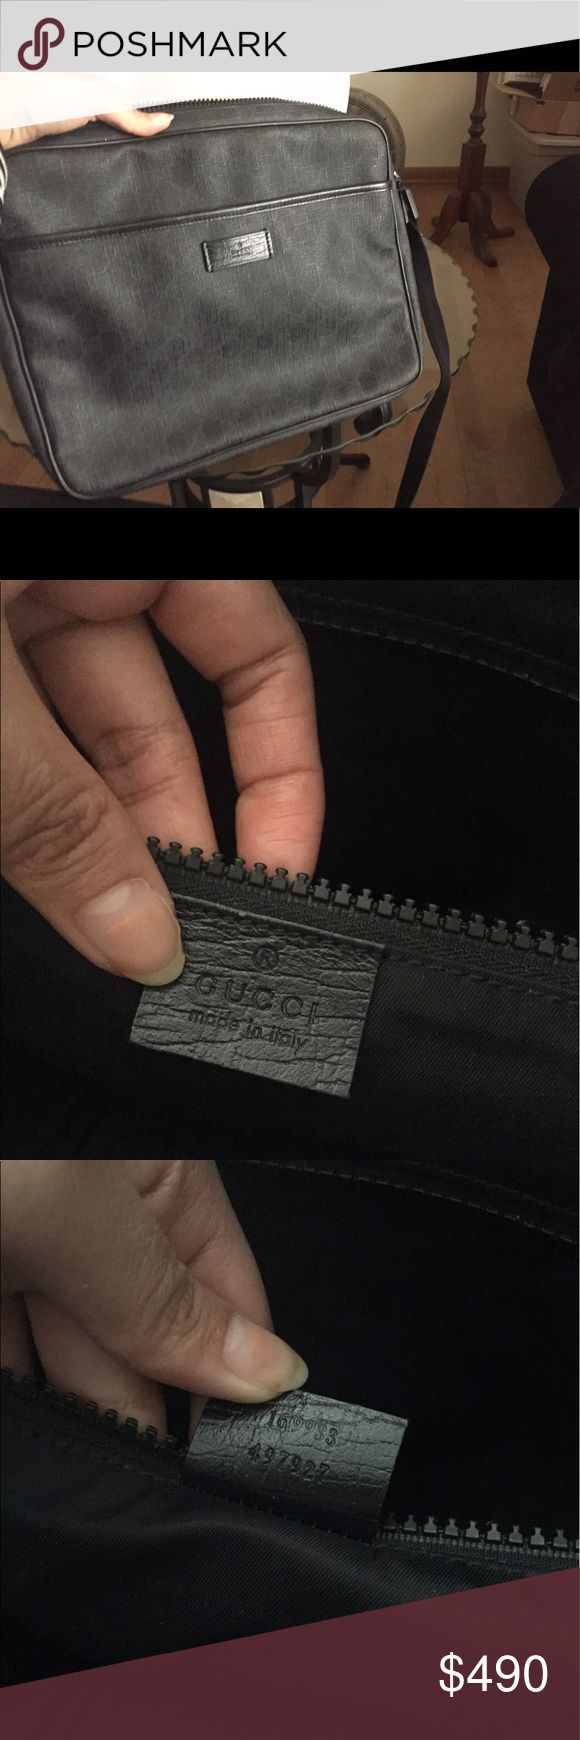 Gucci black messenger bag Authentic  % Gucci Authentic %  in good condition ~95% Gucci messenger bag! Come with care card only (no receipt). I barely use this bag. Very like new! Gucci Bags Crossbody Bags